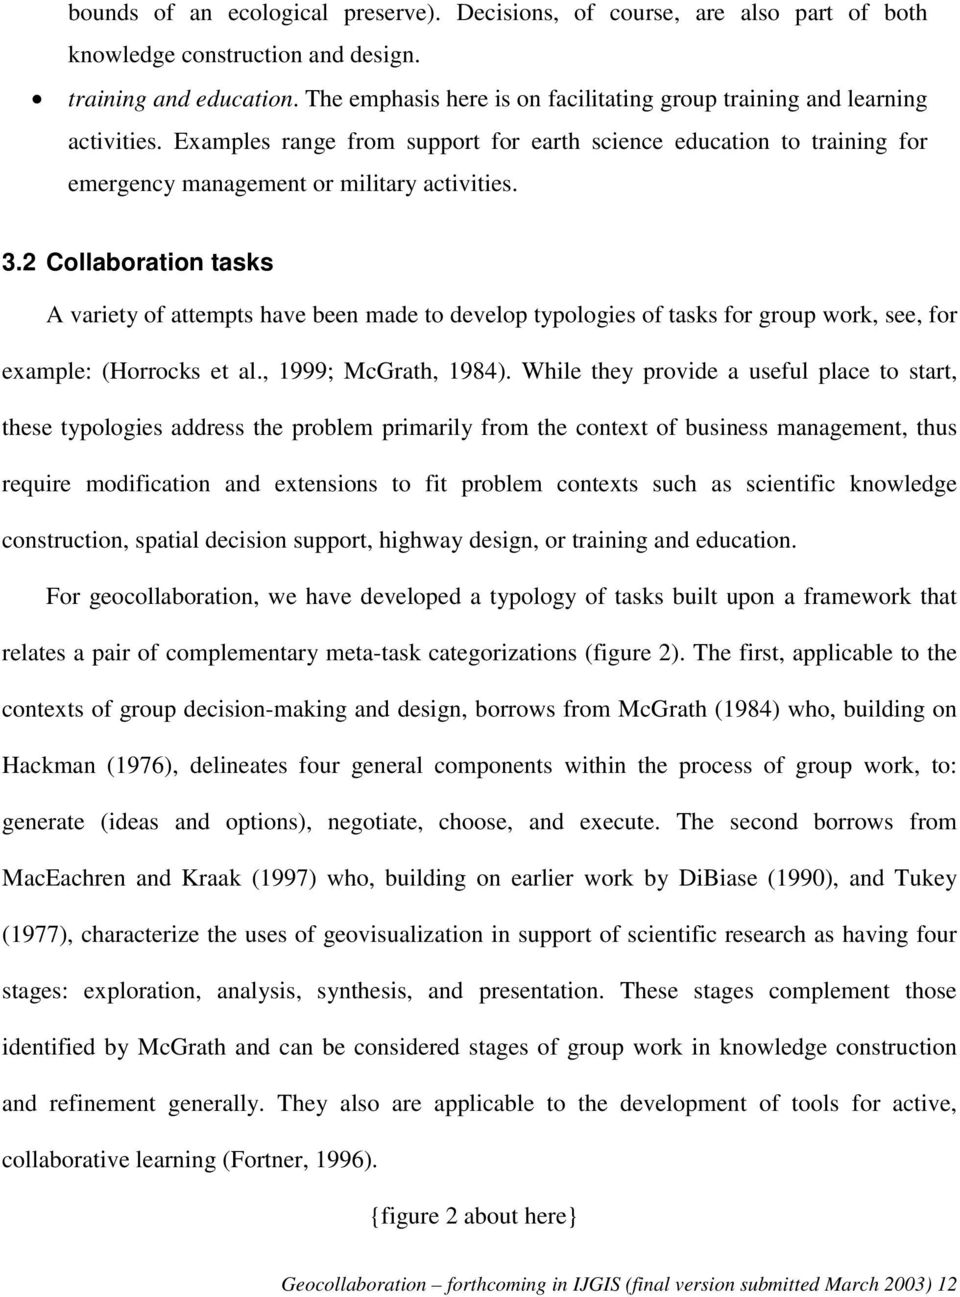 2 Collaboration tasks A variety of attempts have been made to develop typologies of tasks for group work, see, for example: (Horrocks et al., 1999; McGrath, 1984).